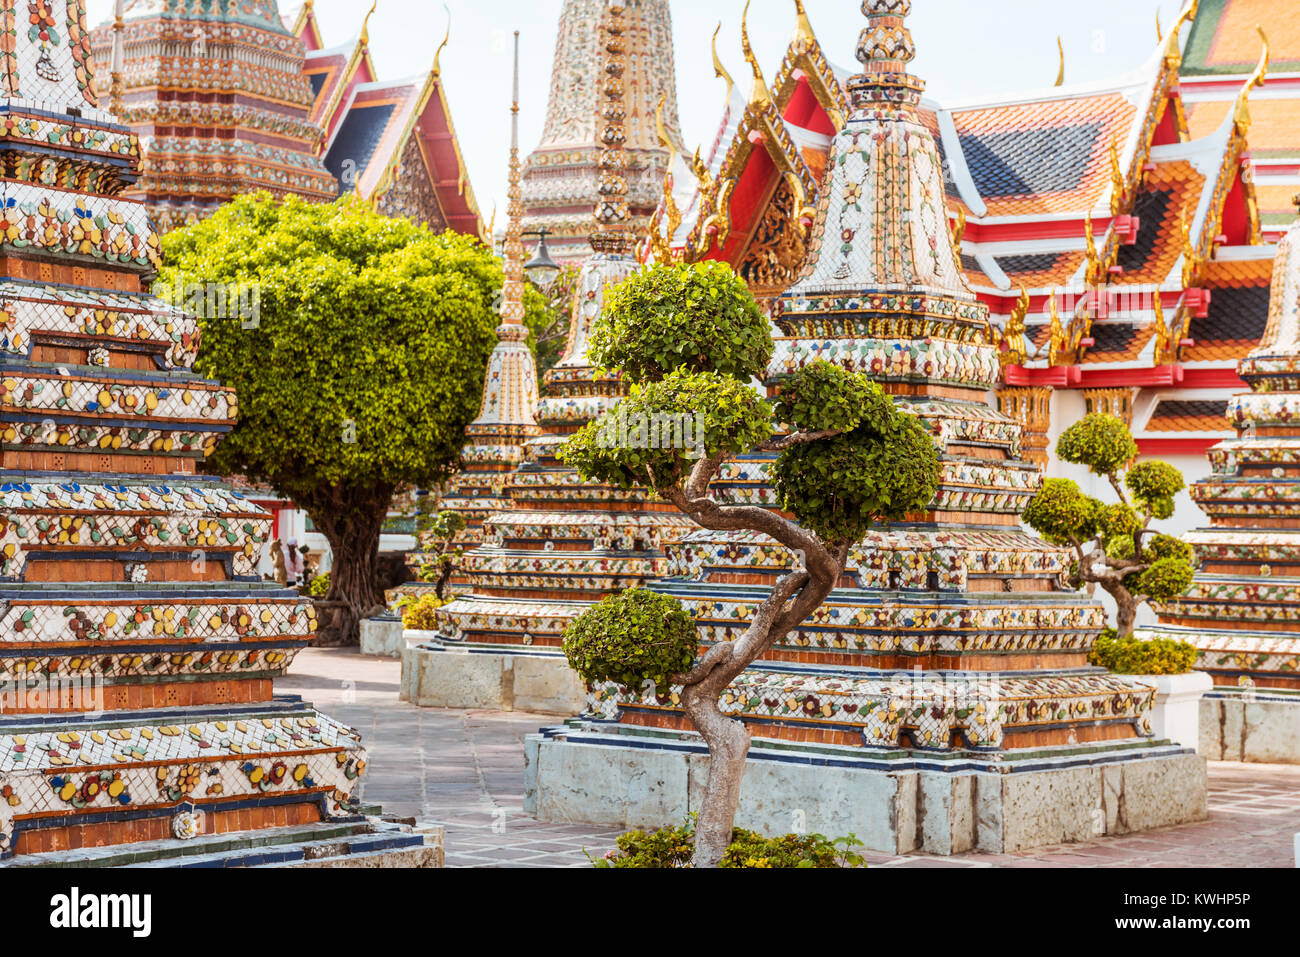 Wat Pho in Bangkok, landmark of Thailand - Stock Image